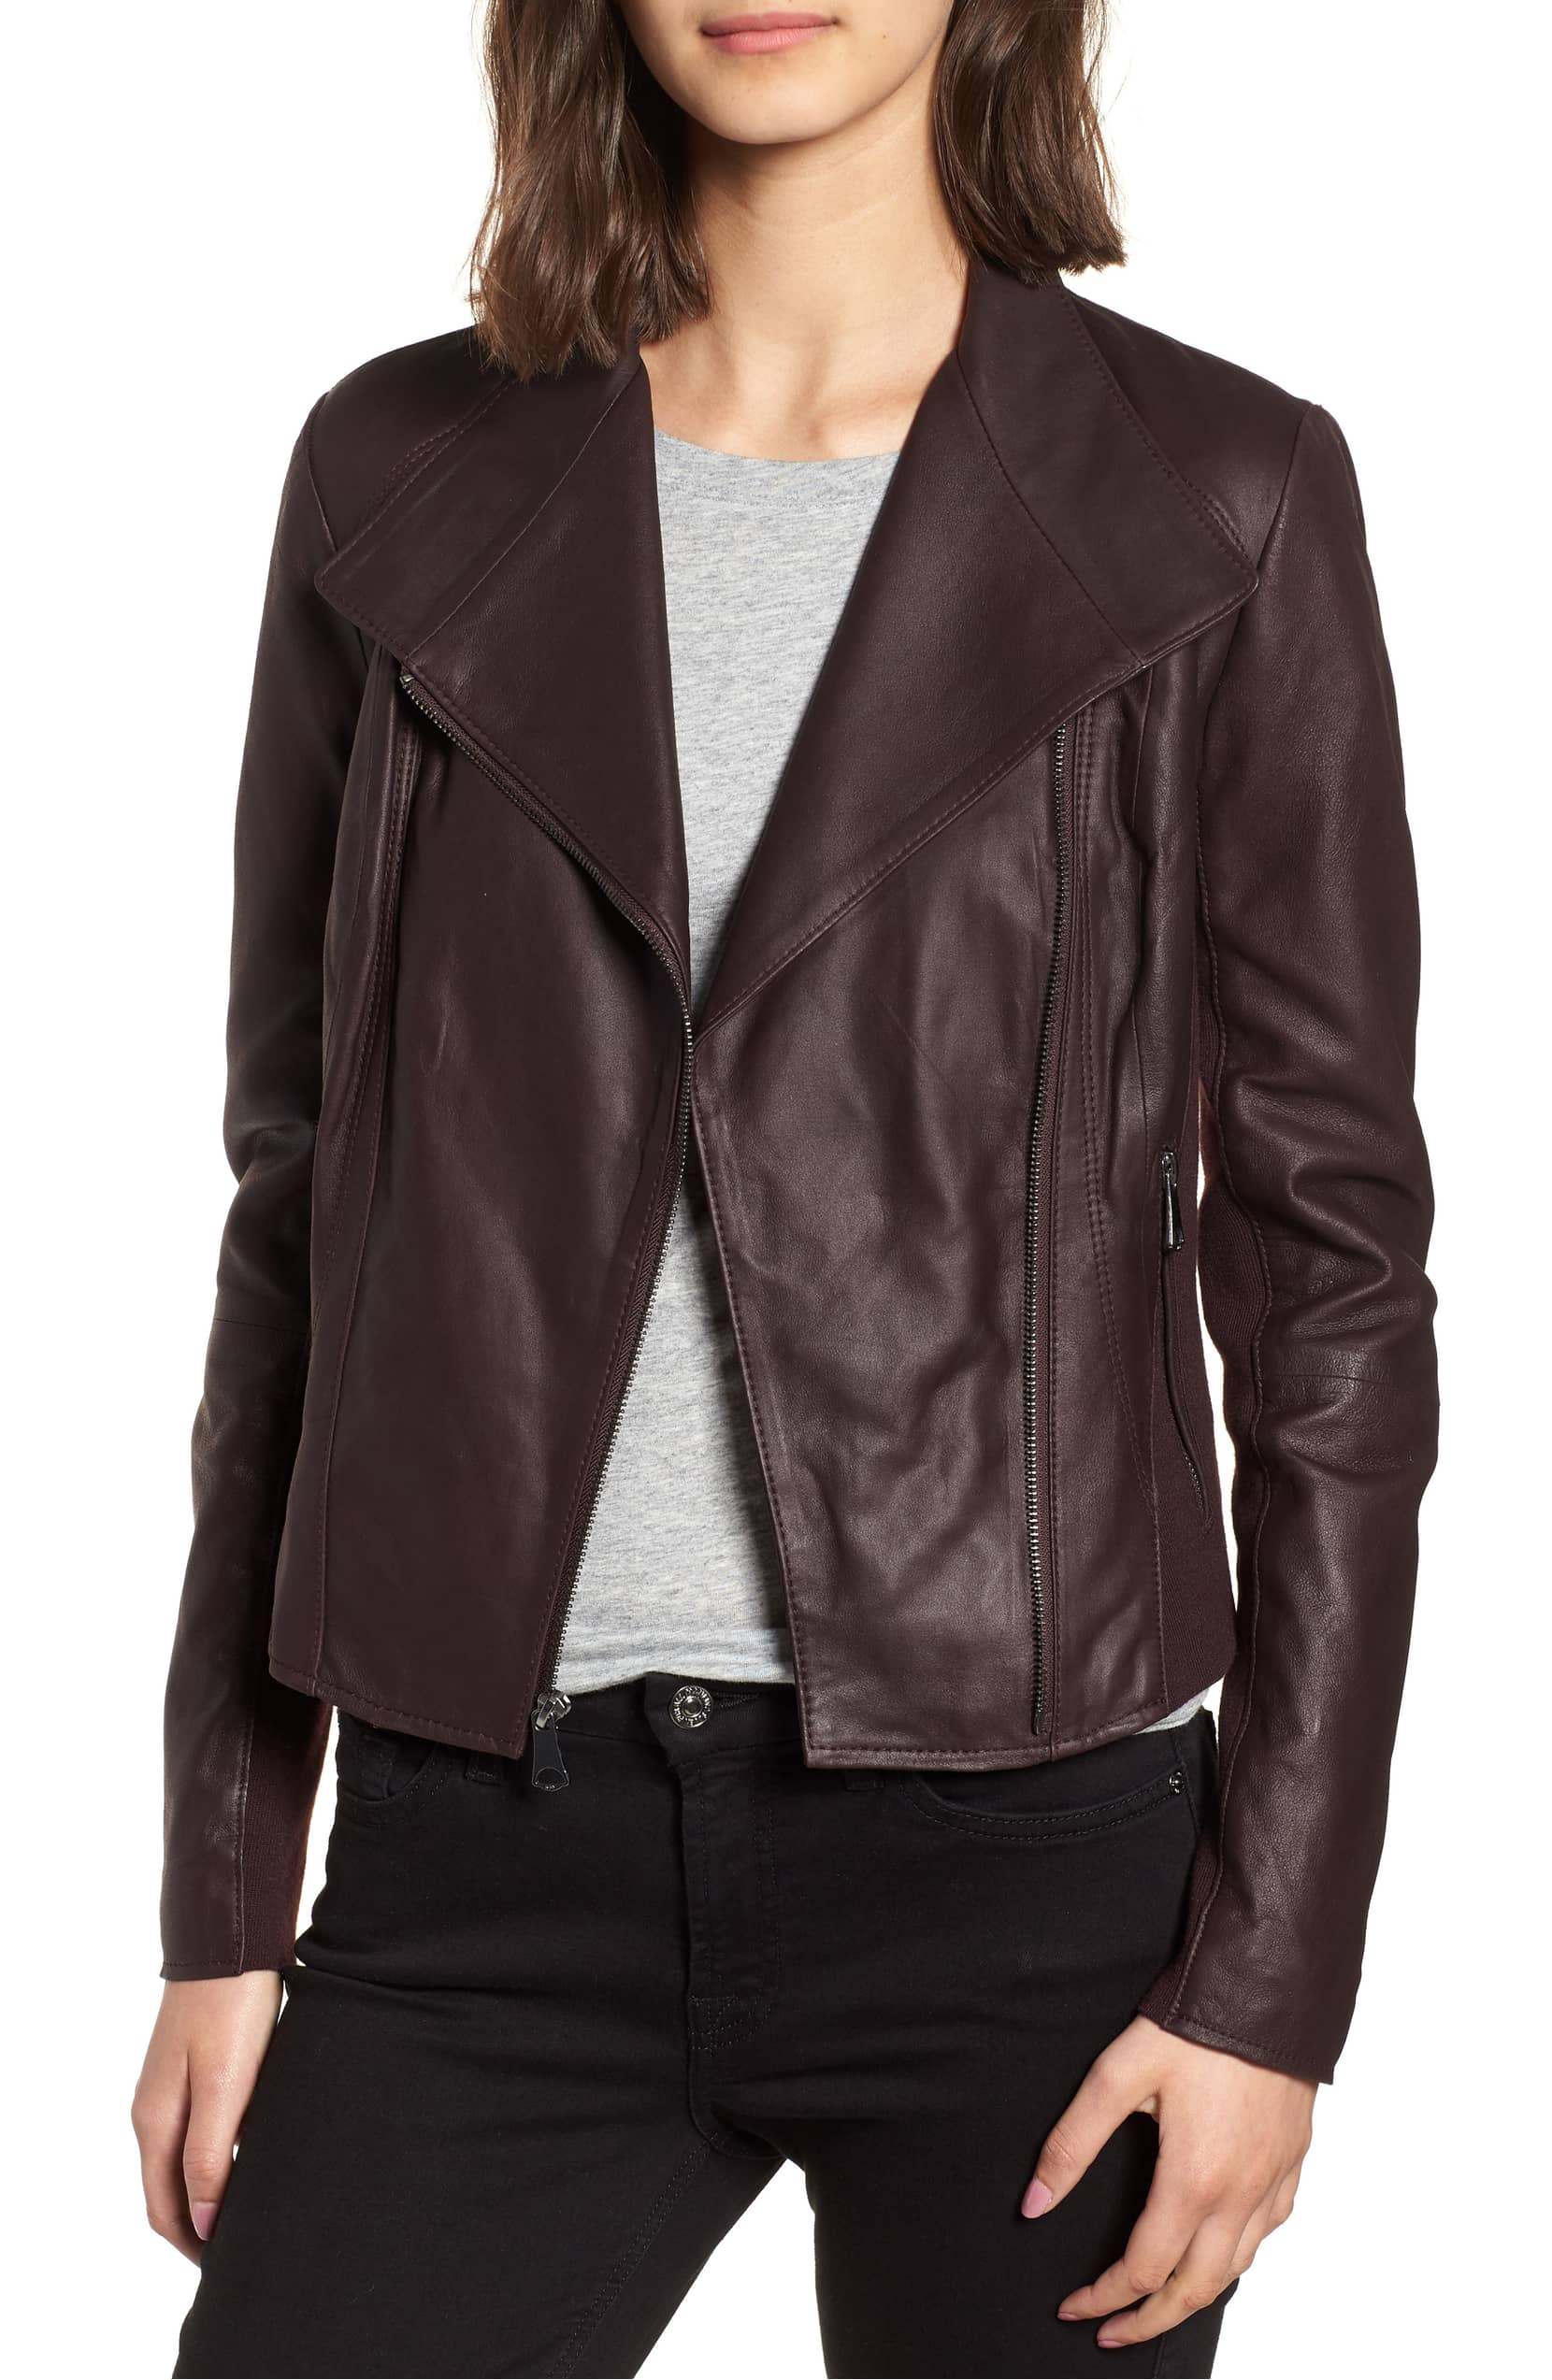 This Brown Leather Jacket Is A Great Alternative To